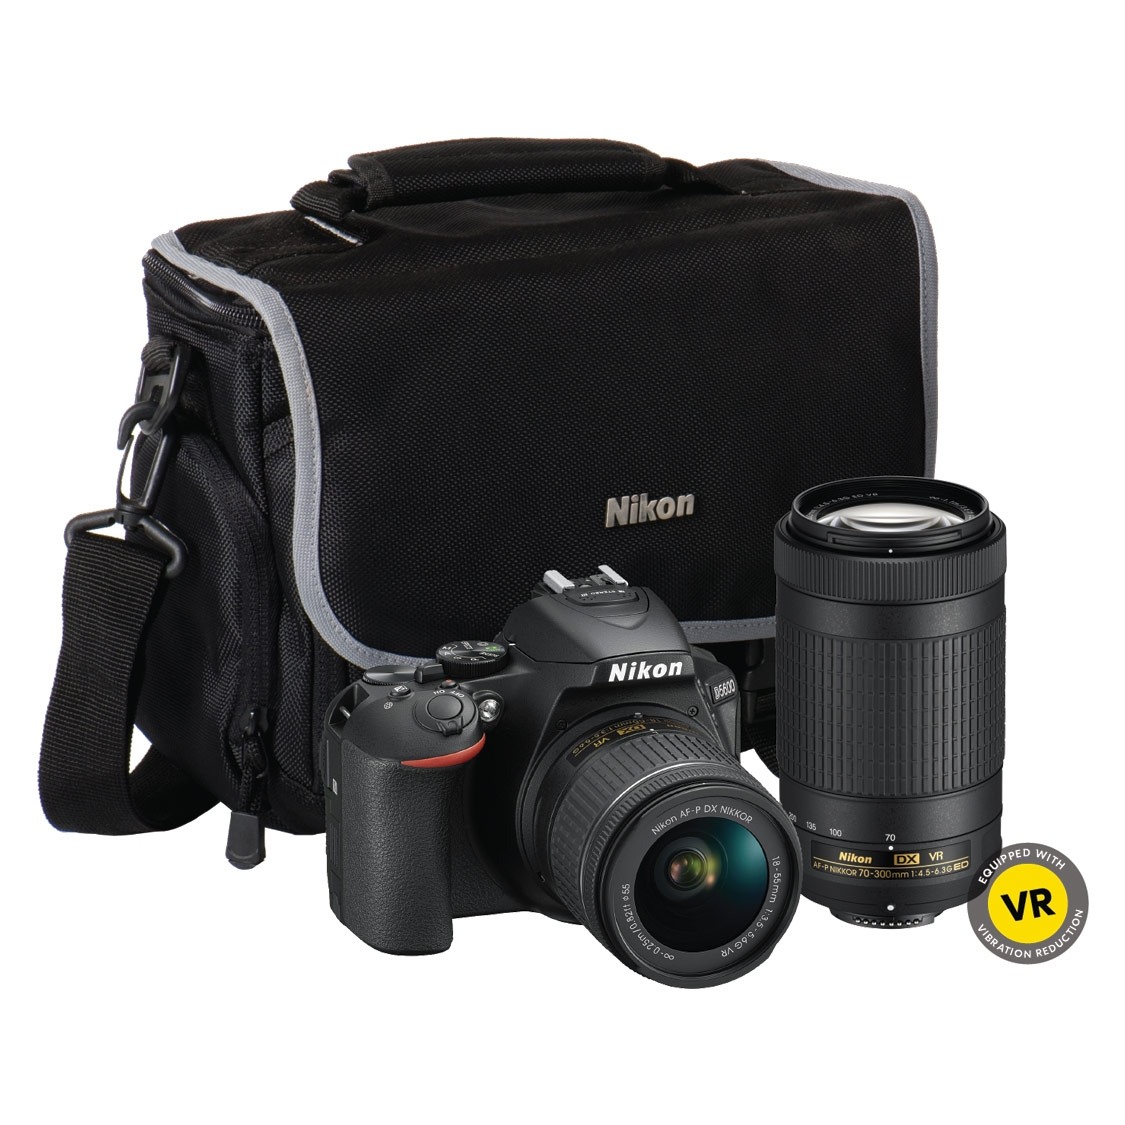 Nikon D5600 DSLR with 18-55mm VR, 70-300mm VR and Bag